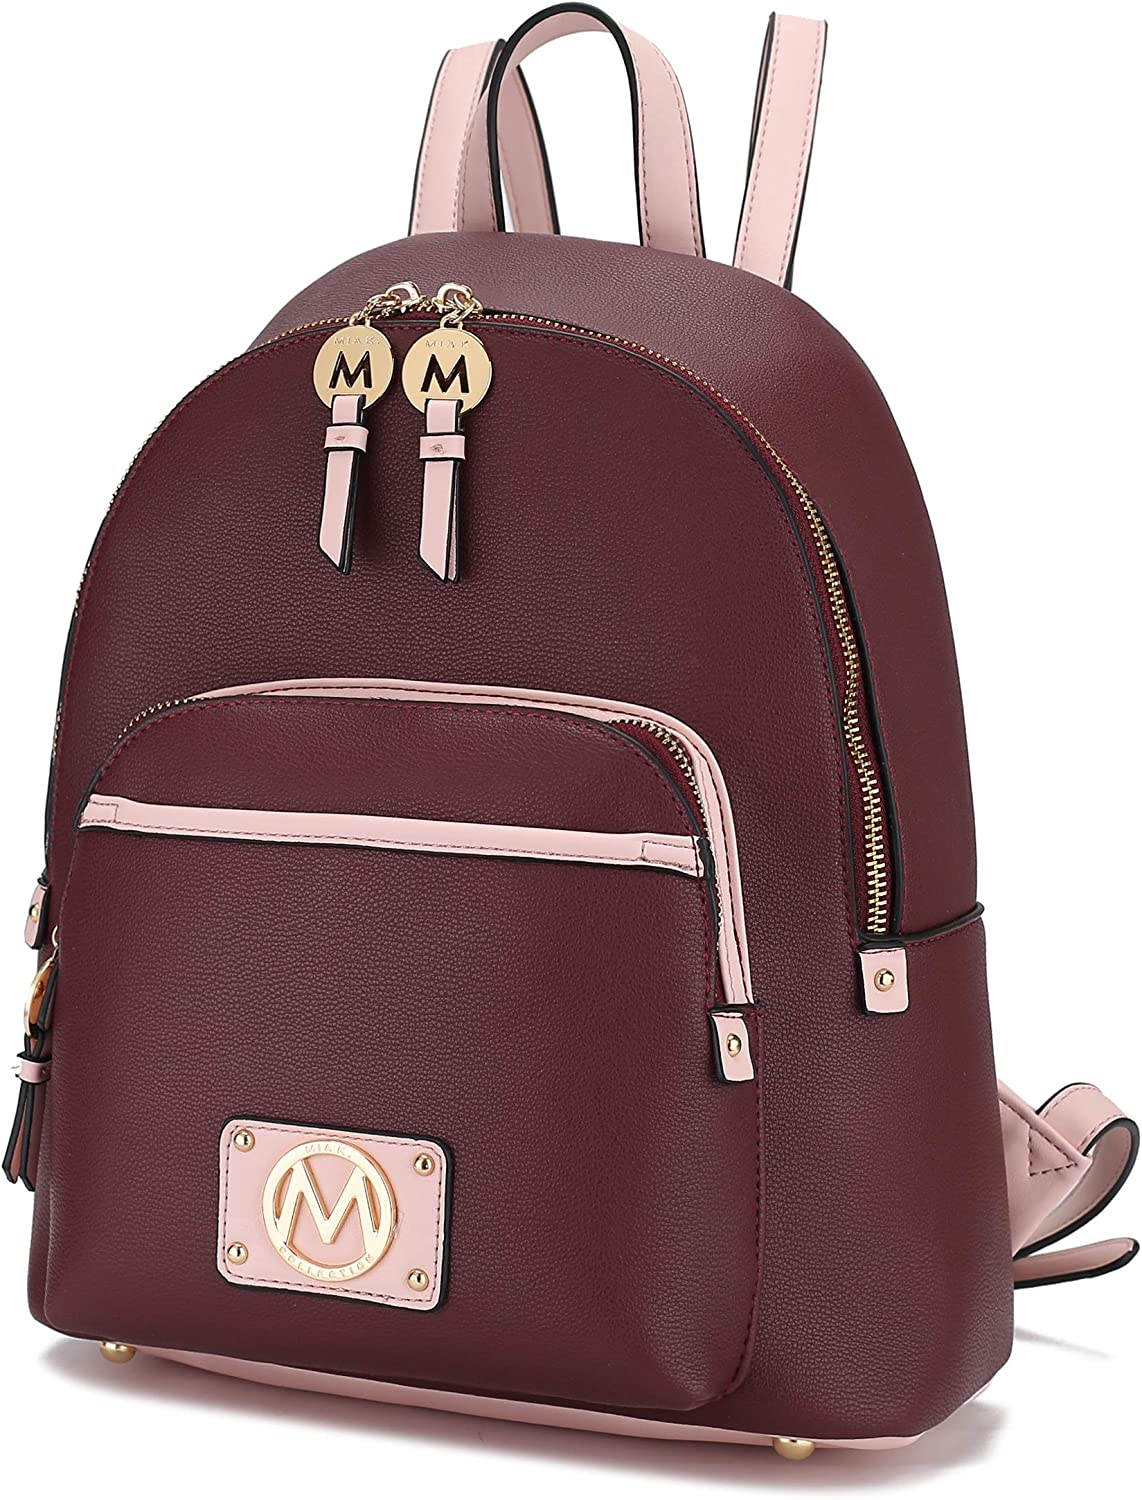 MKF Backpack Purse for Women Teen Girls Top-Handl Leather – Tampa Mall Spring new work PU